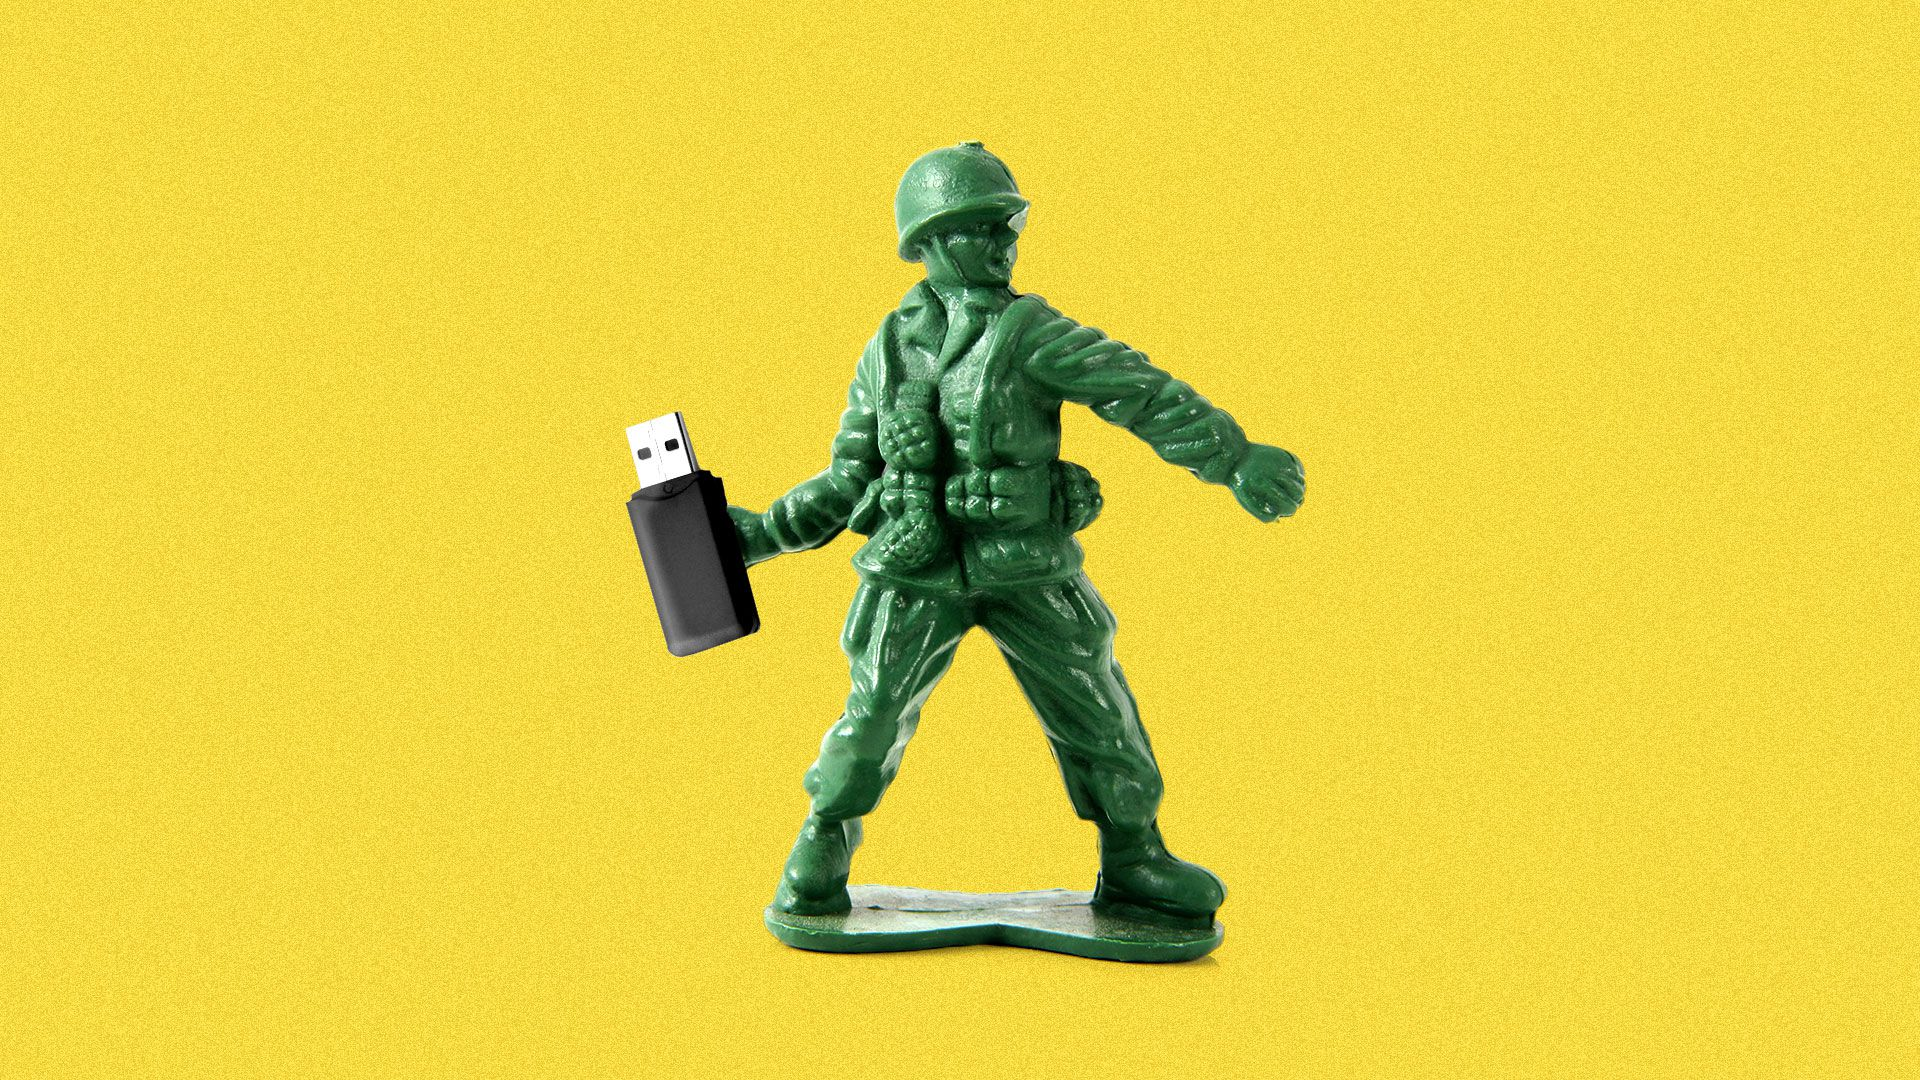 Illustration of a green army man about to throw a USB stick as if it's a grenade.